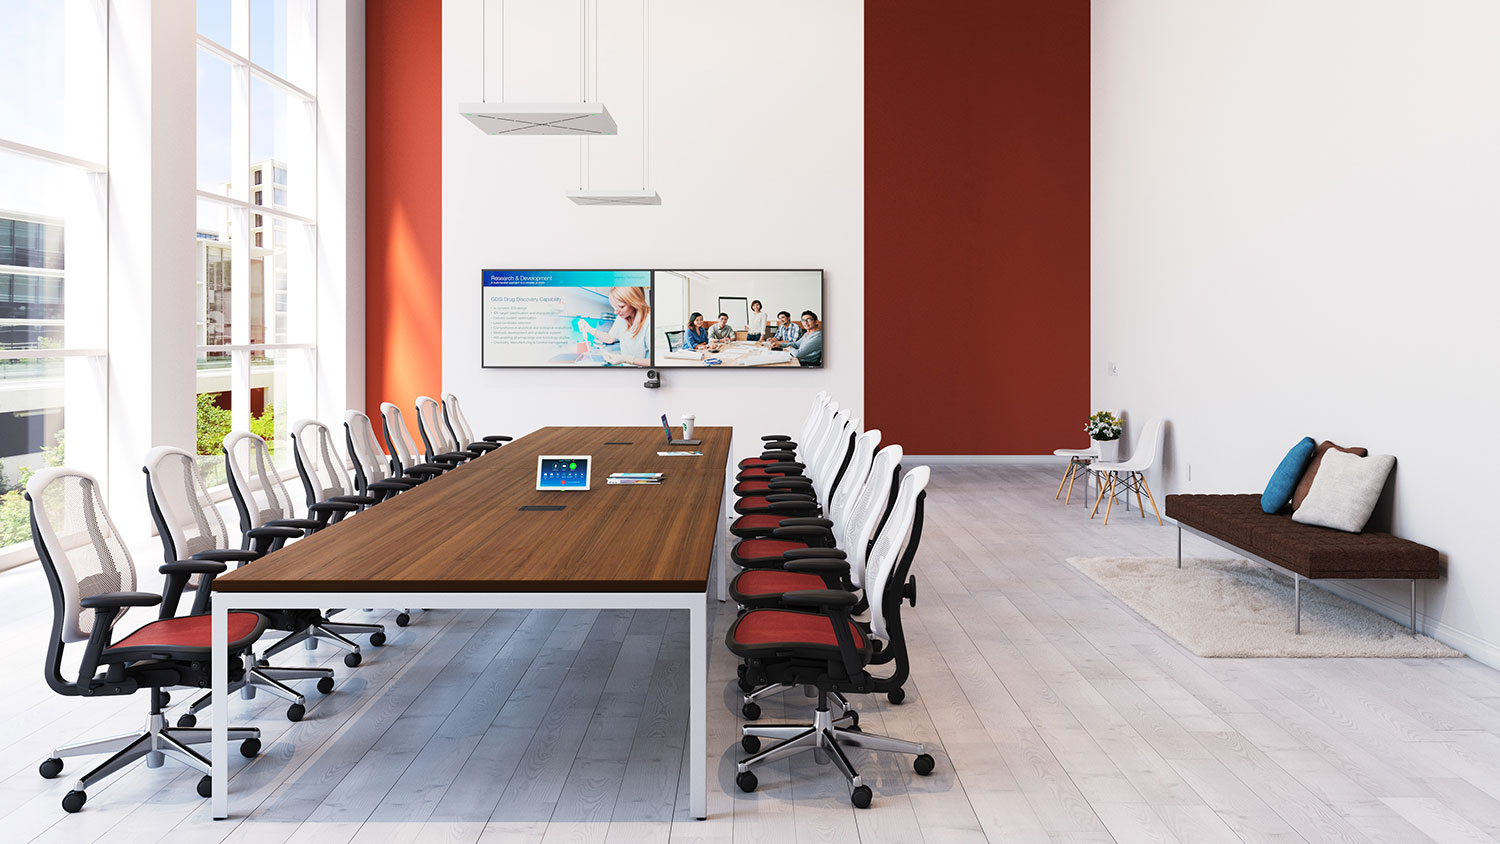 Thumbnail preview of Large Conference Room